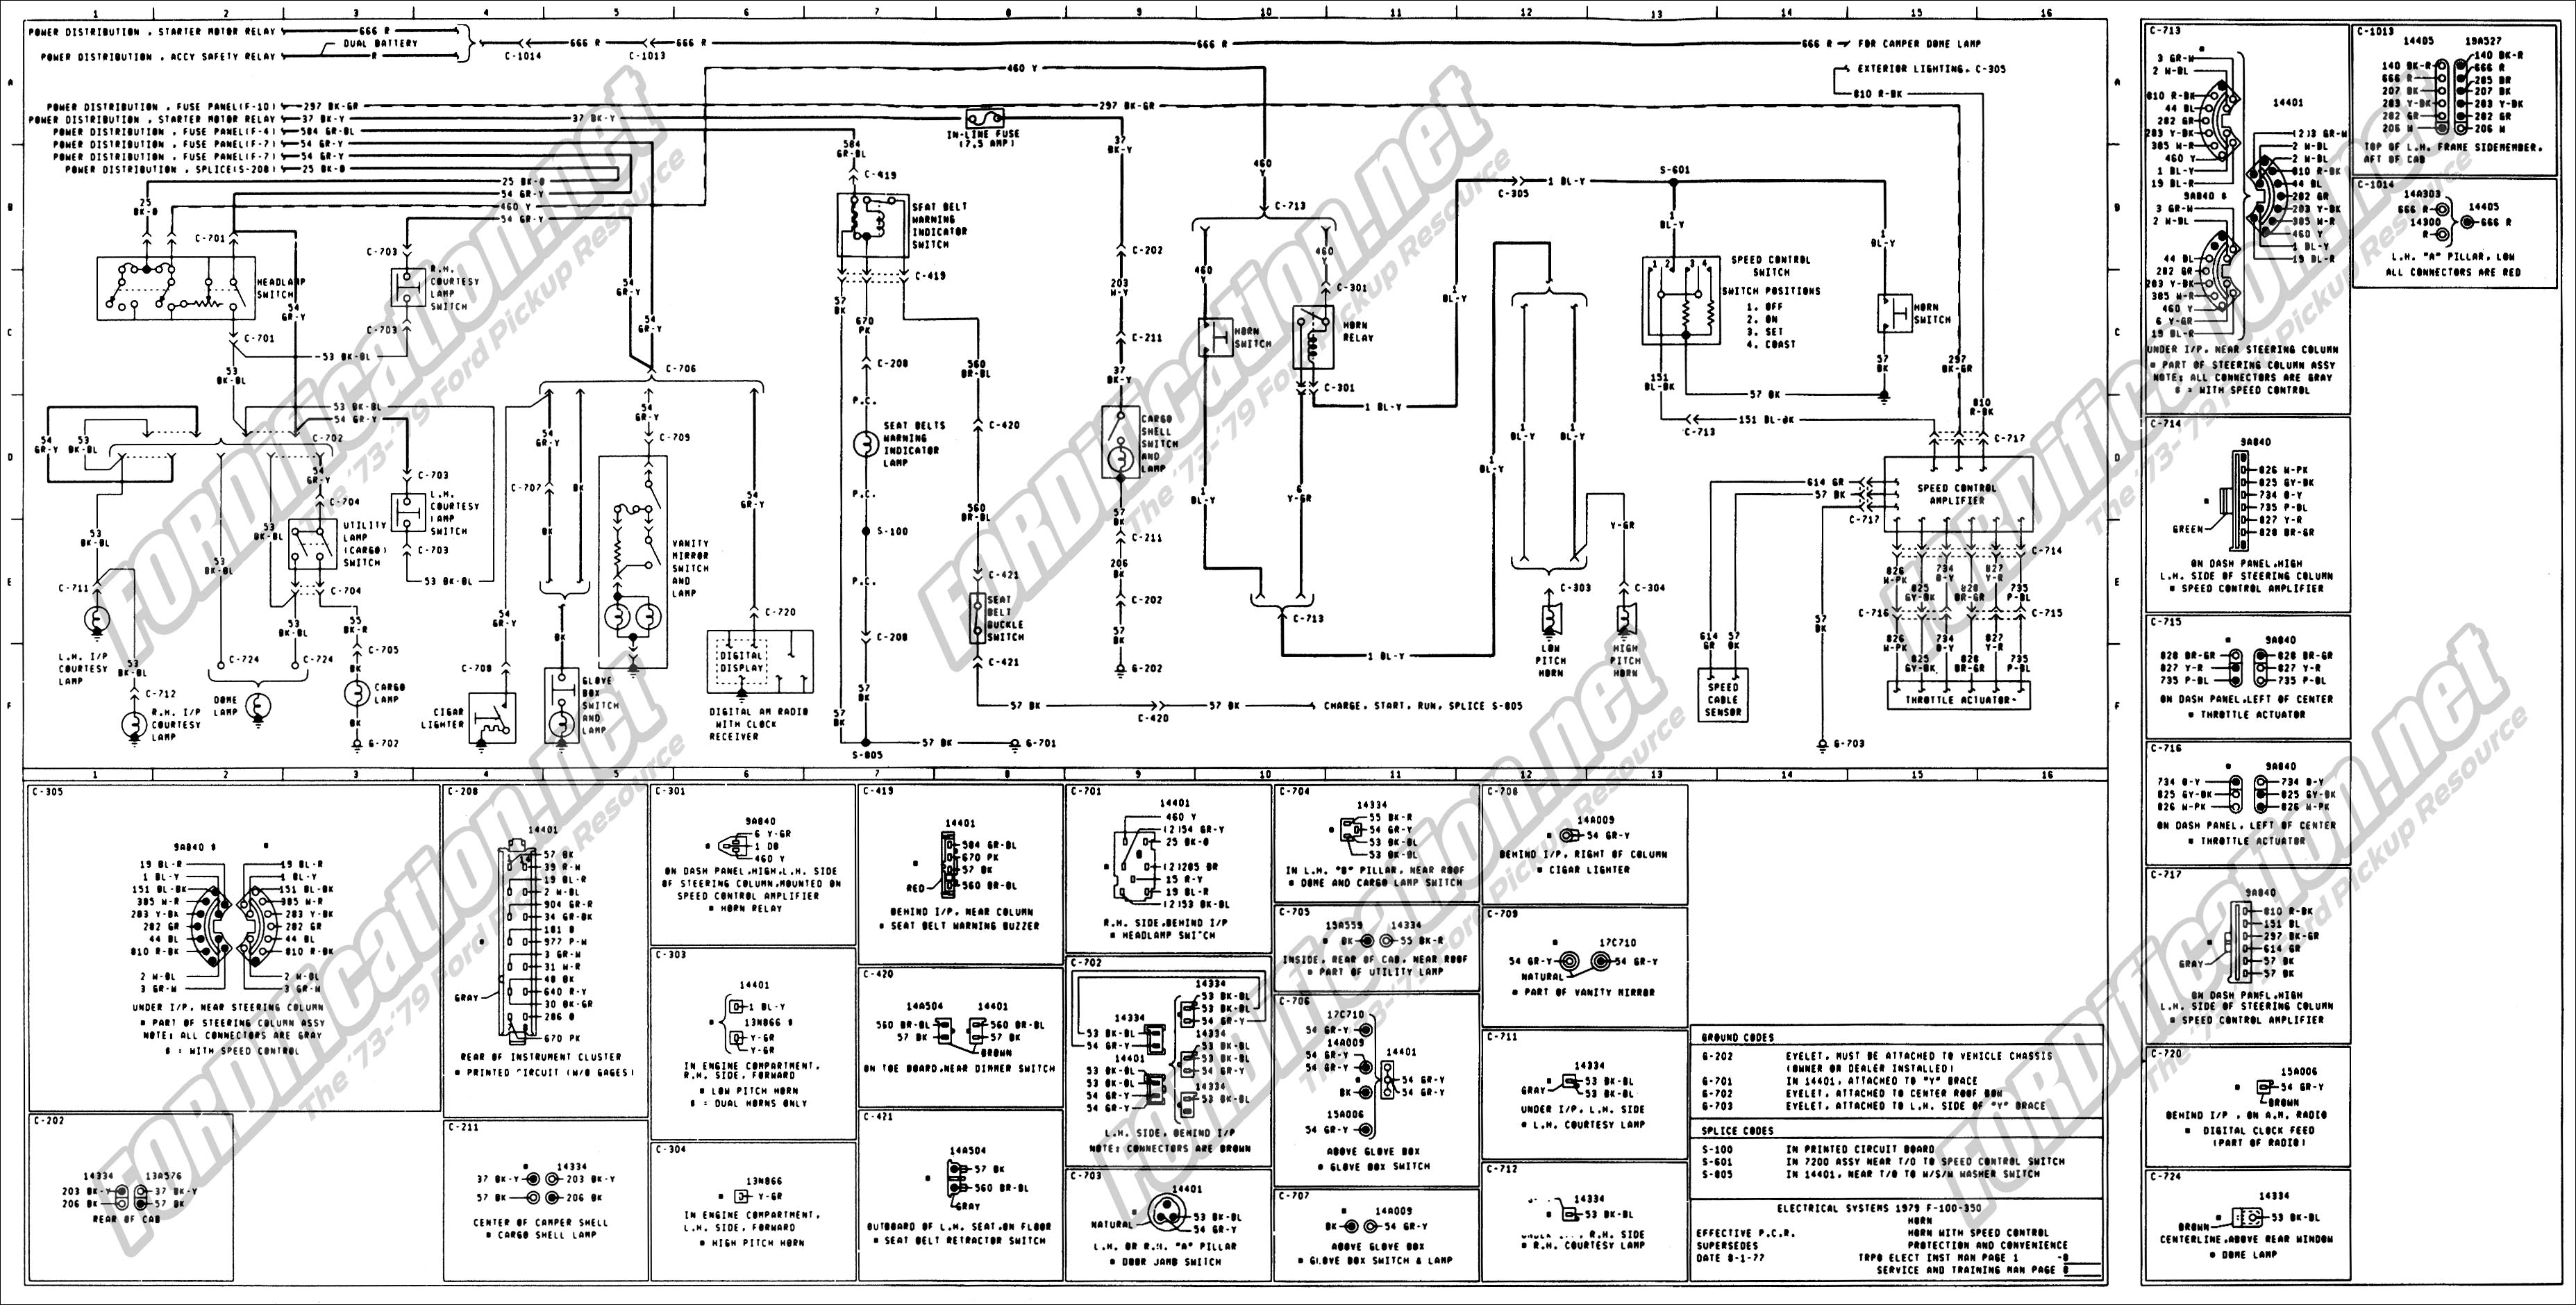 Ford F650 Turn Signal Wiring Diagram Worksheet And Kawasaki Vulcan 1500 1979 Schematics Detailed Rh Jppastryarts Com Flasher